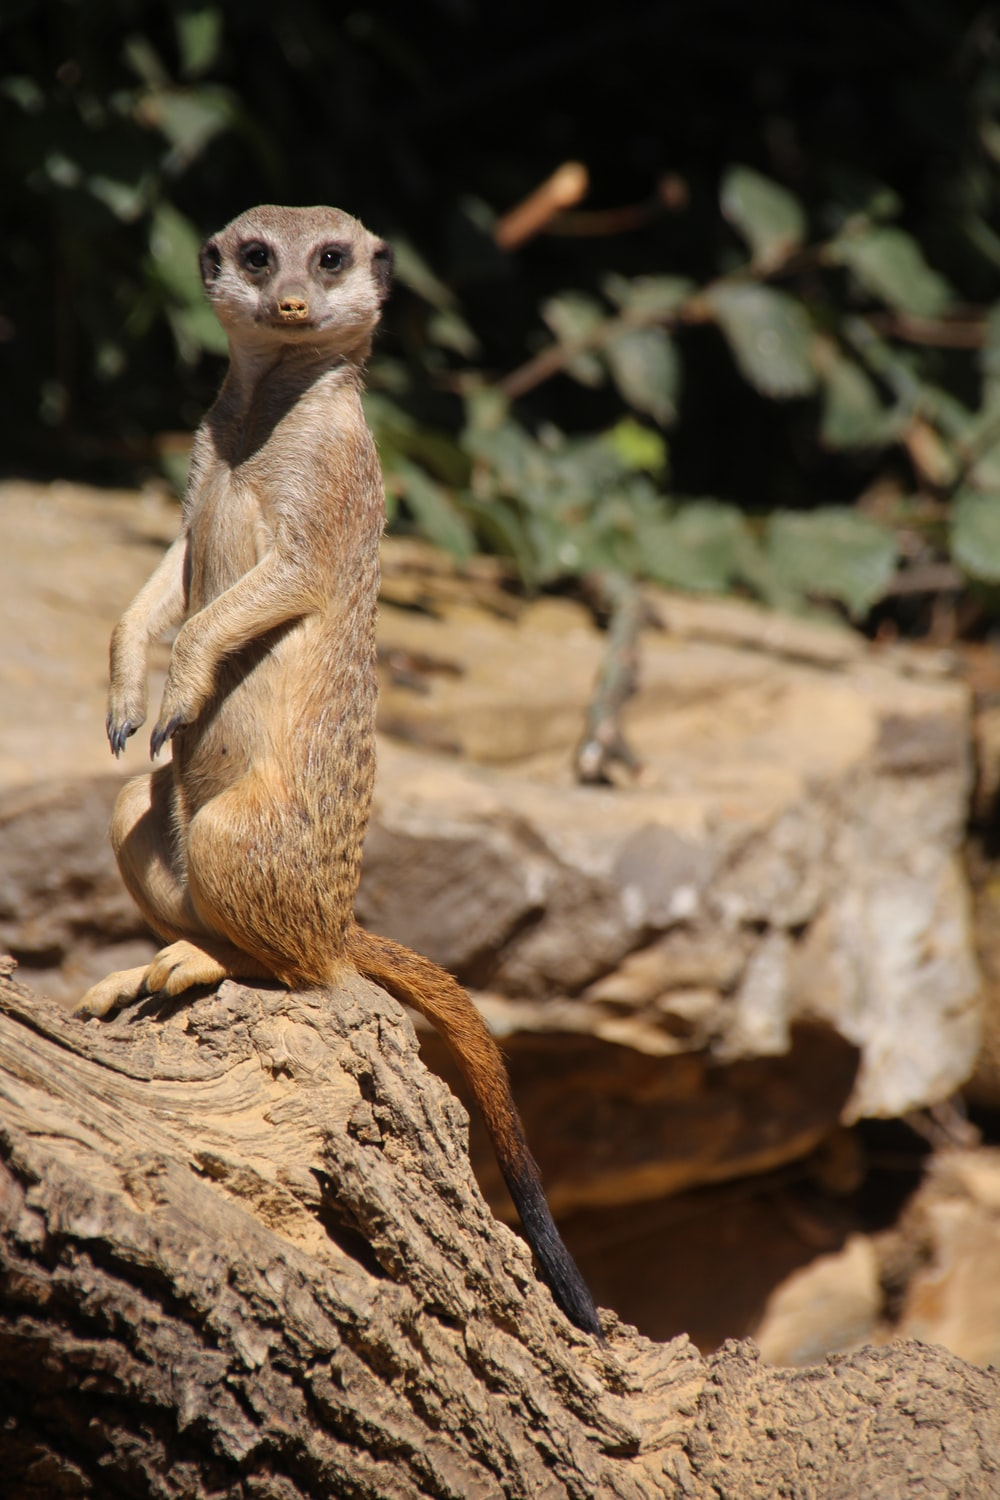 brown and white meerkat on brown rock during daytime